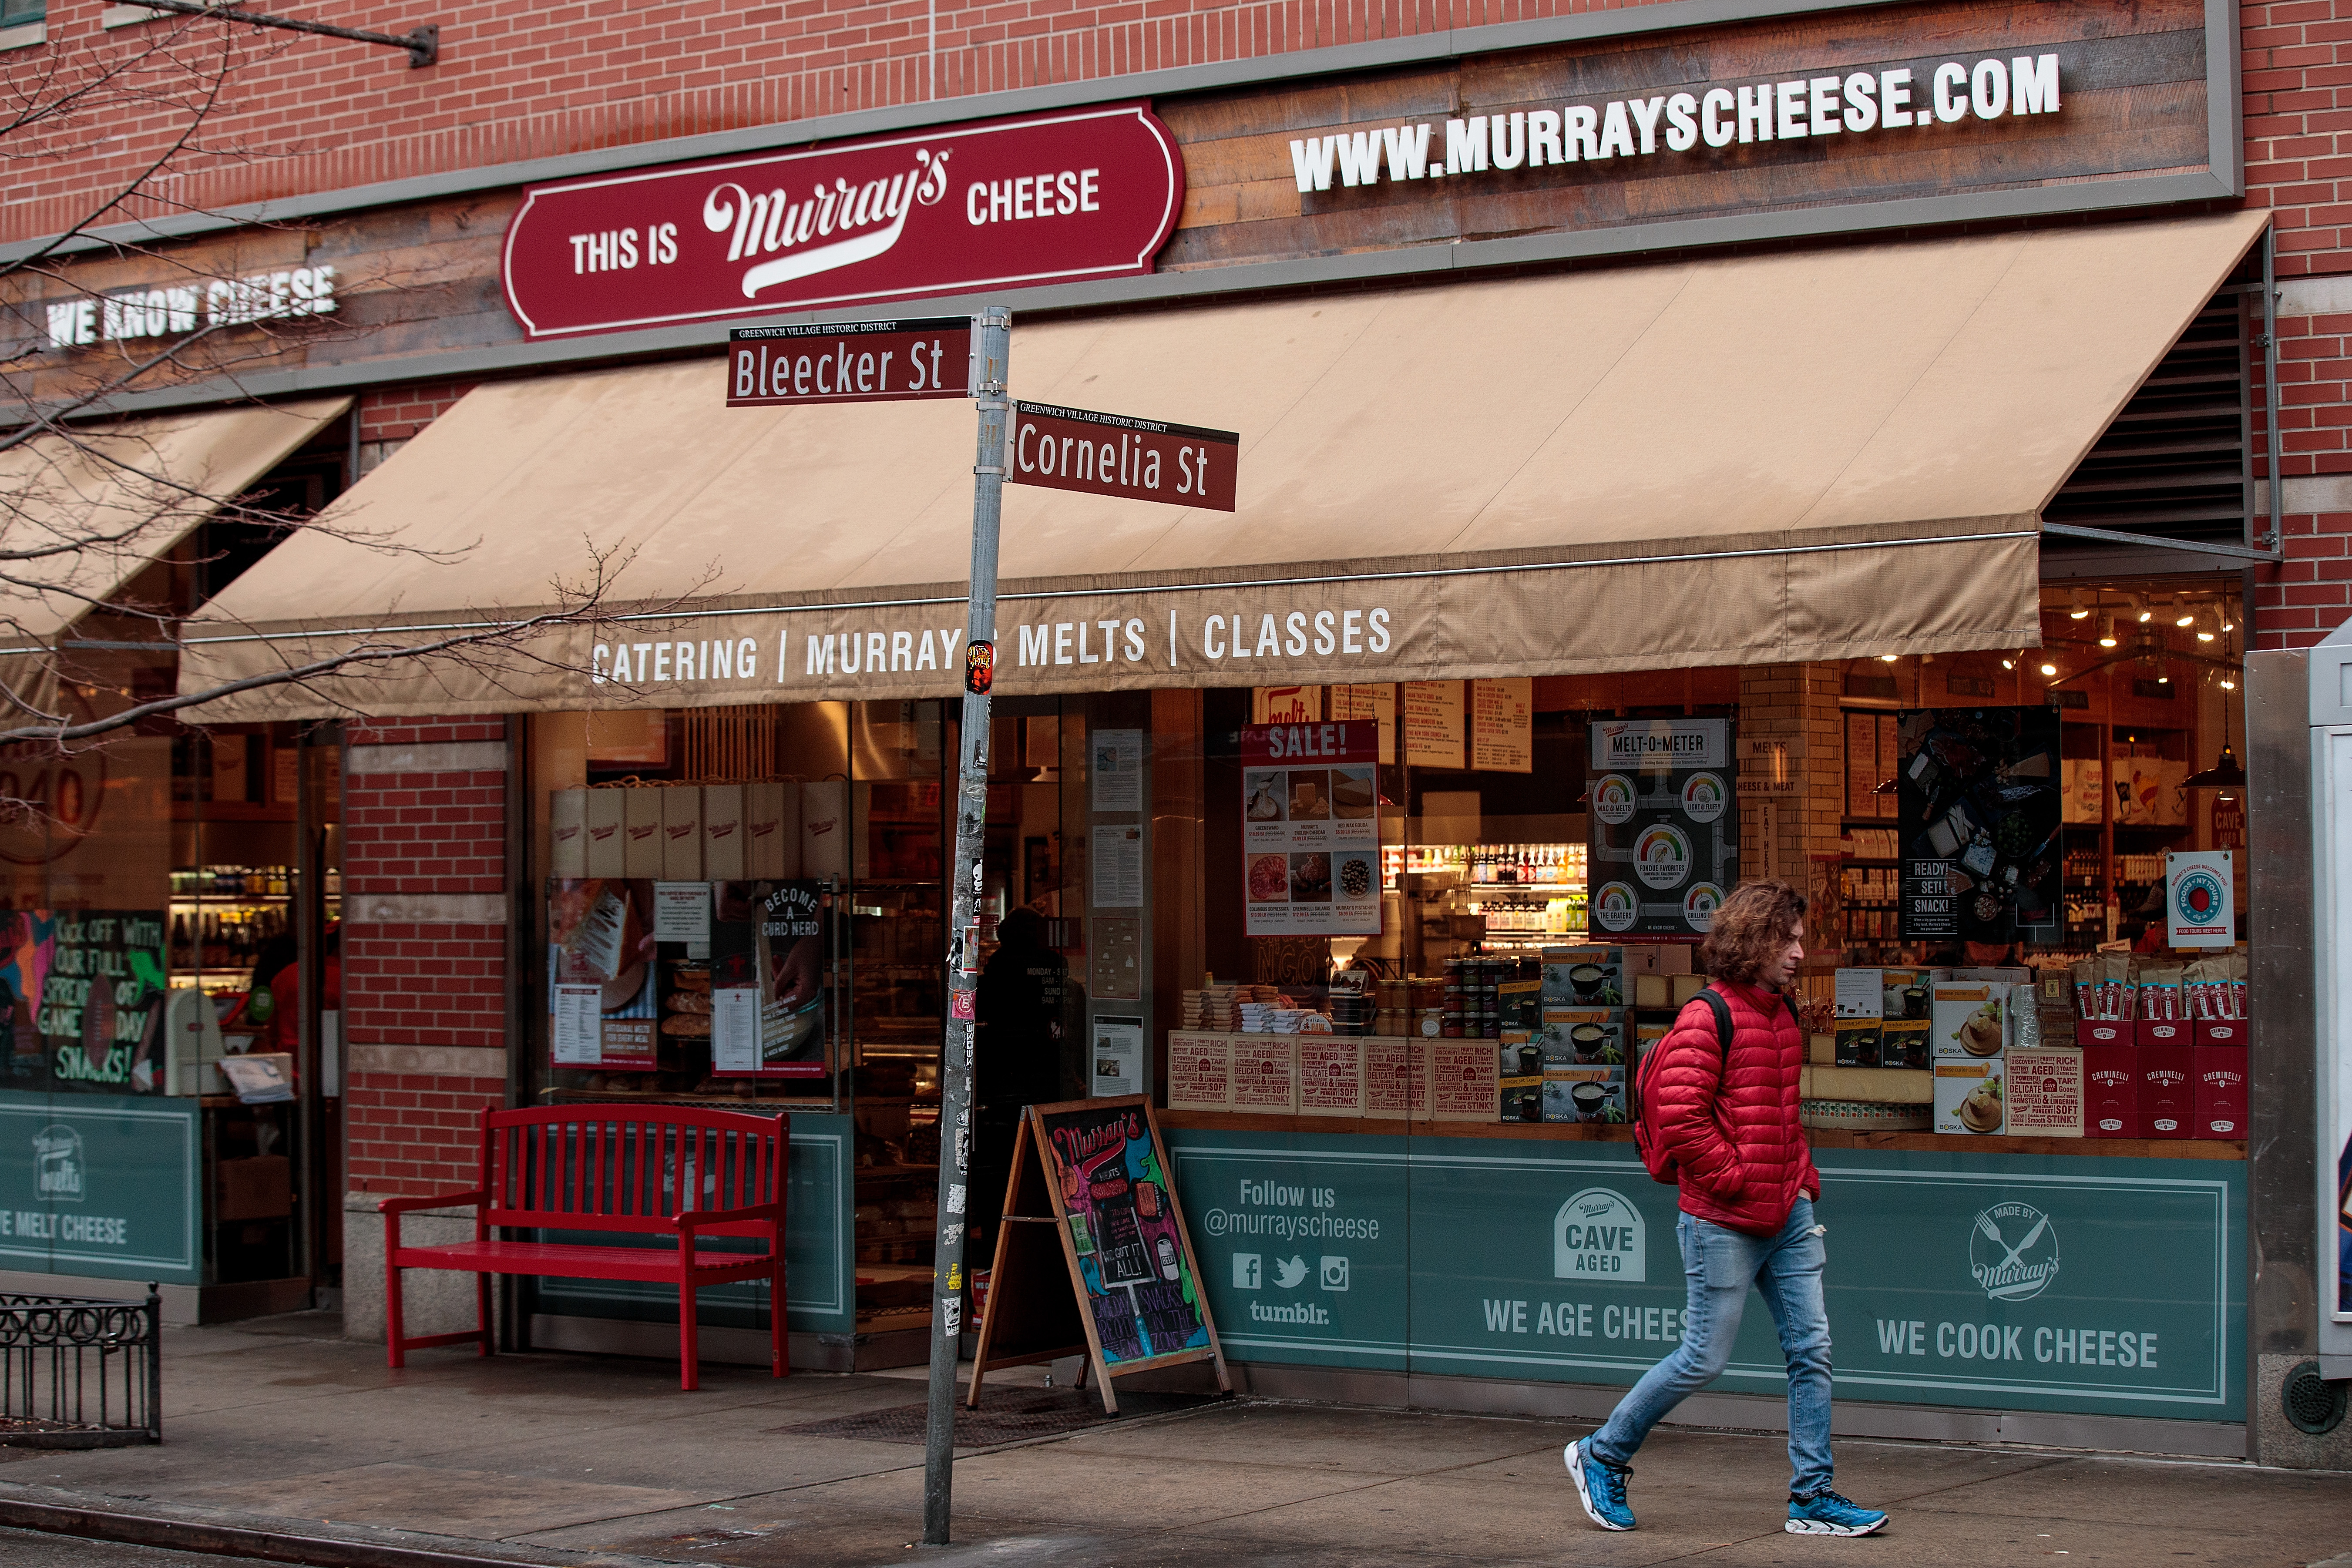 NYC Establishment Murray's Cheese Bought By Kroger Supermarkets